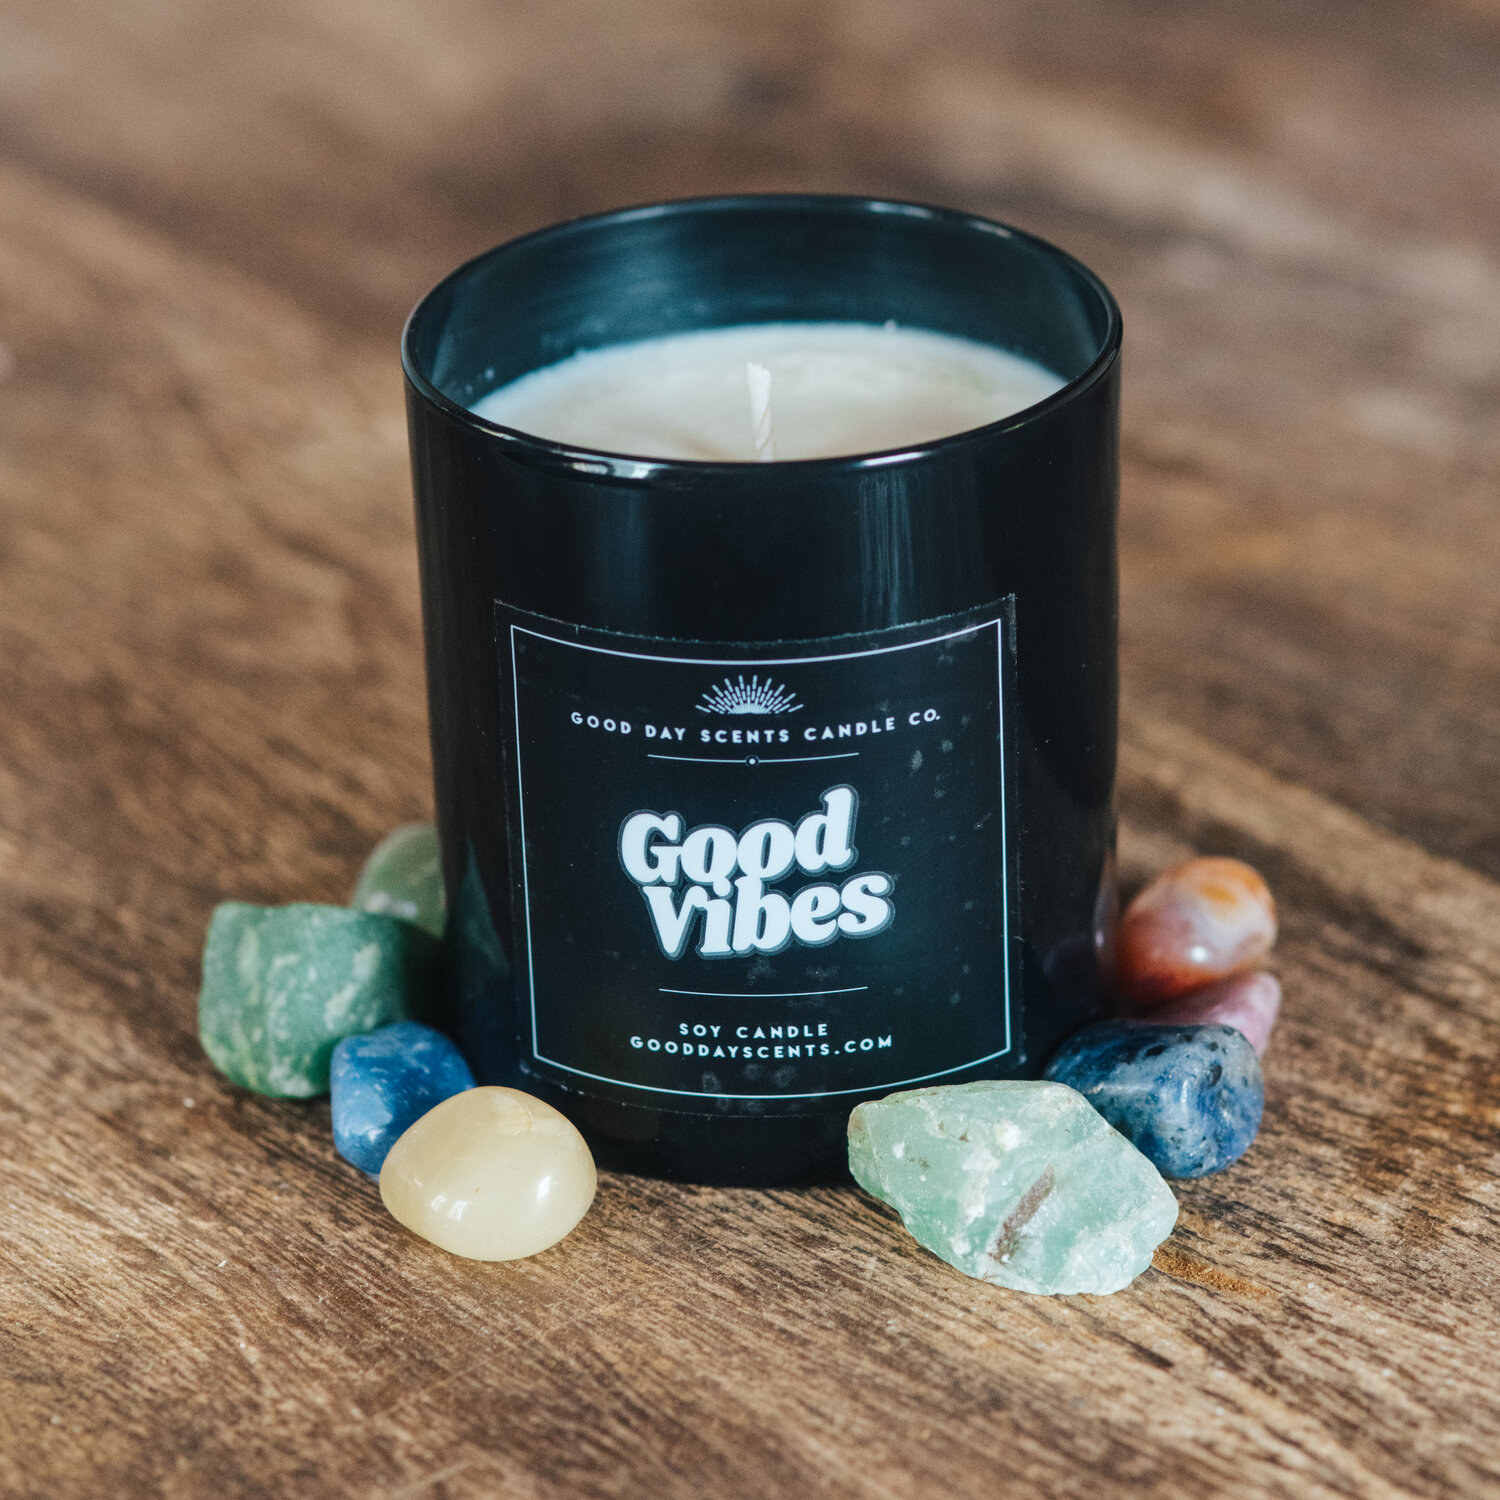 Candle in a minimalist black jar with the text good vibes printed on it